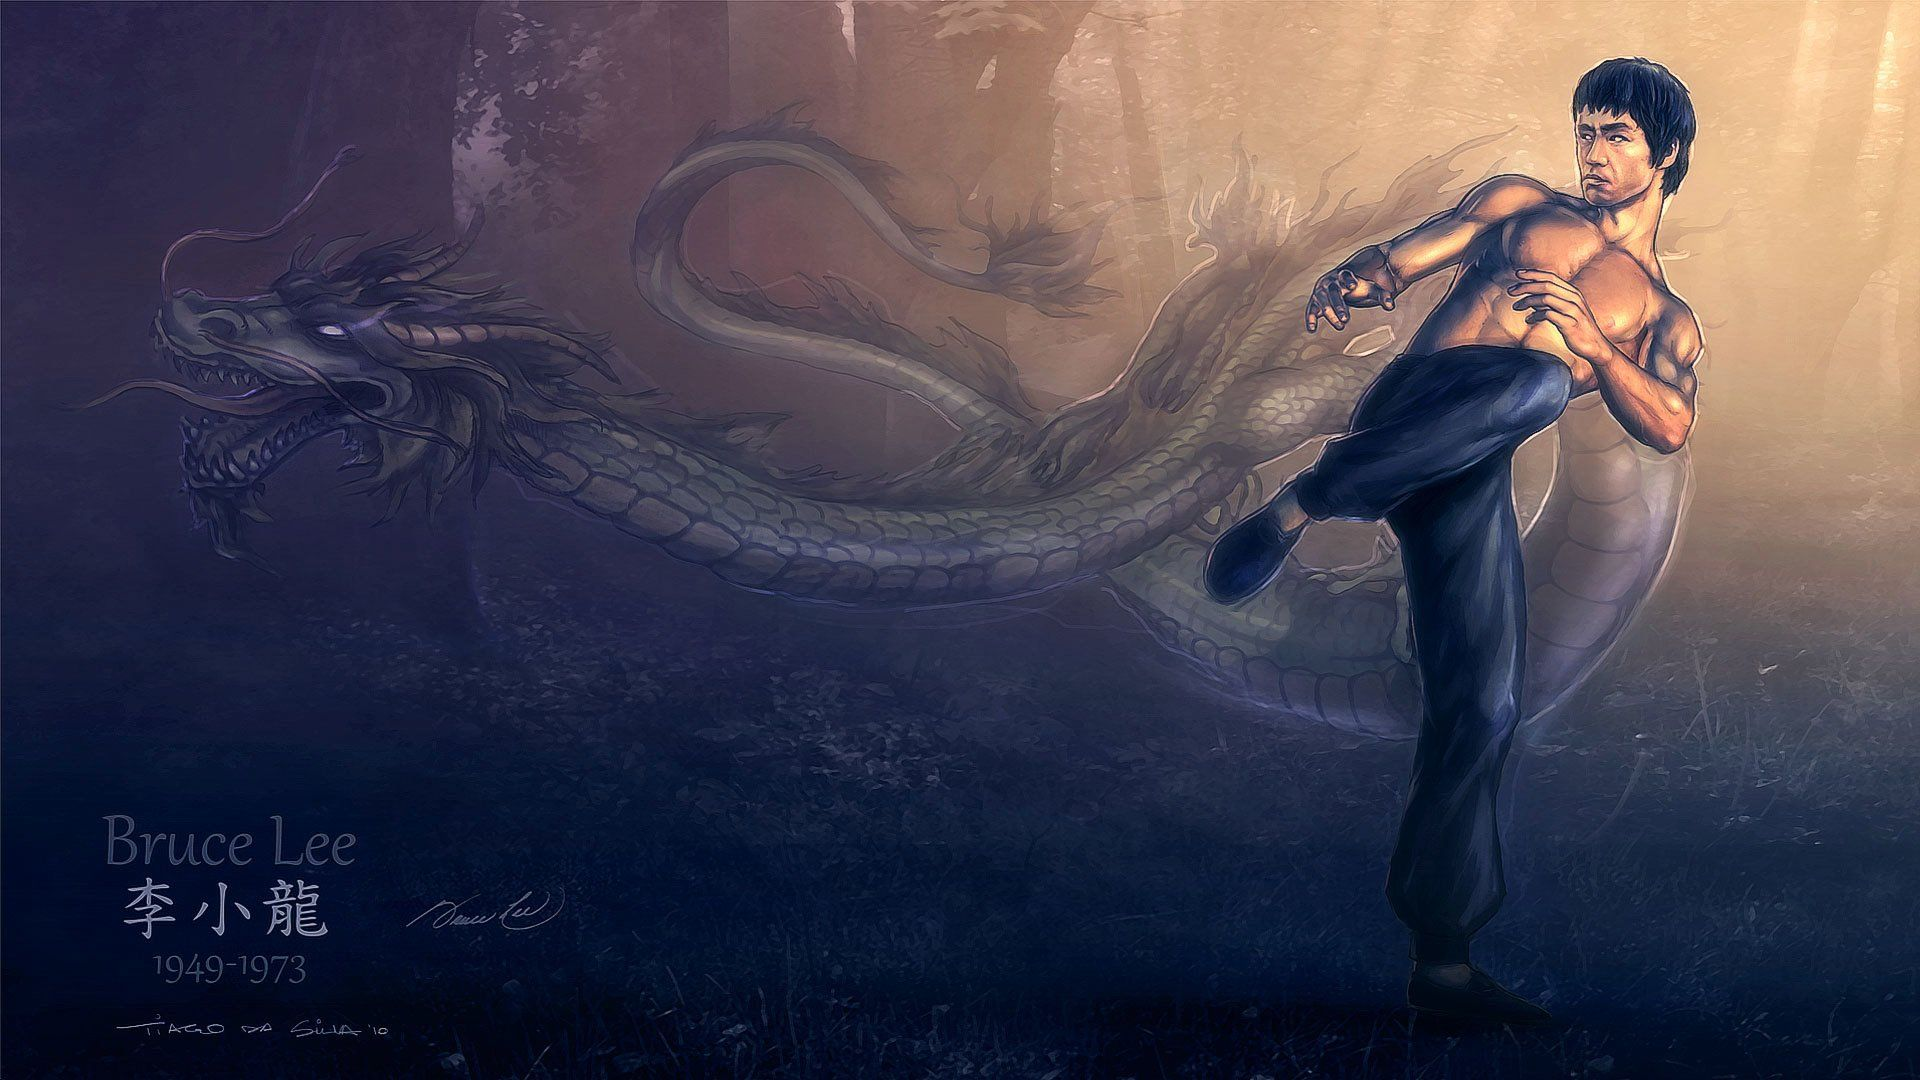 1920x1080 Martial Arts Full HD Wallpaper and Background Image   1920x1080   ID ...